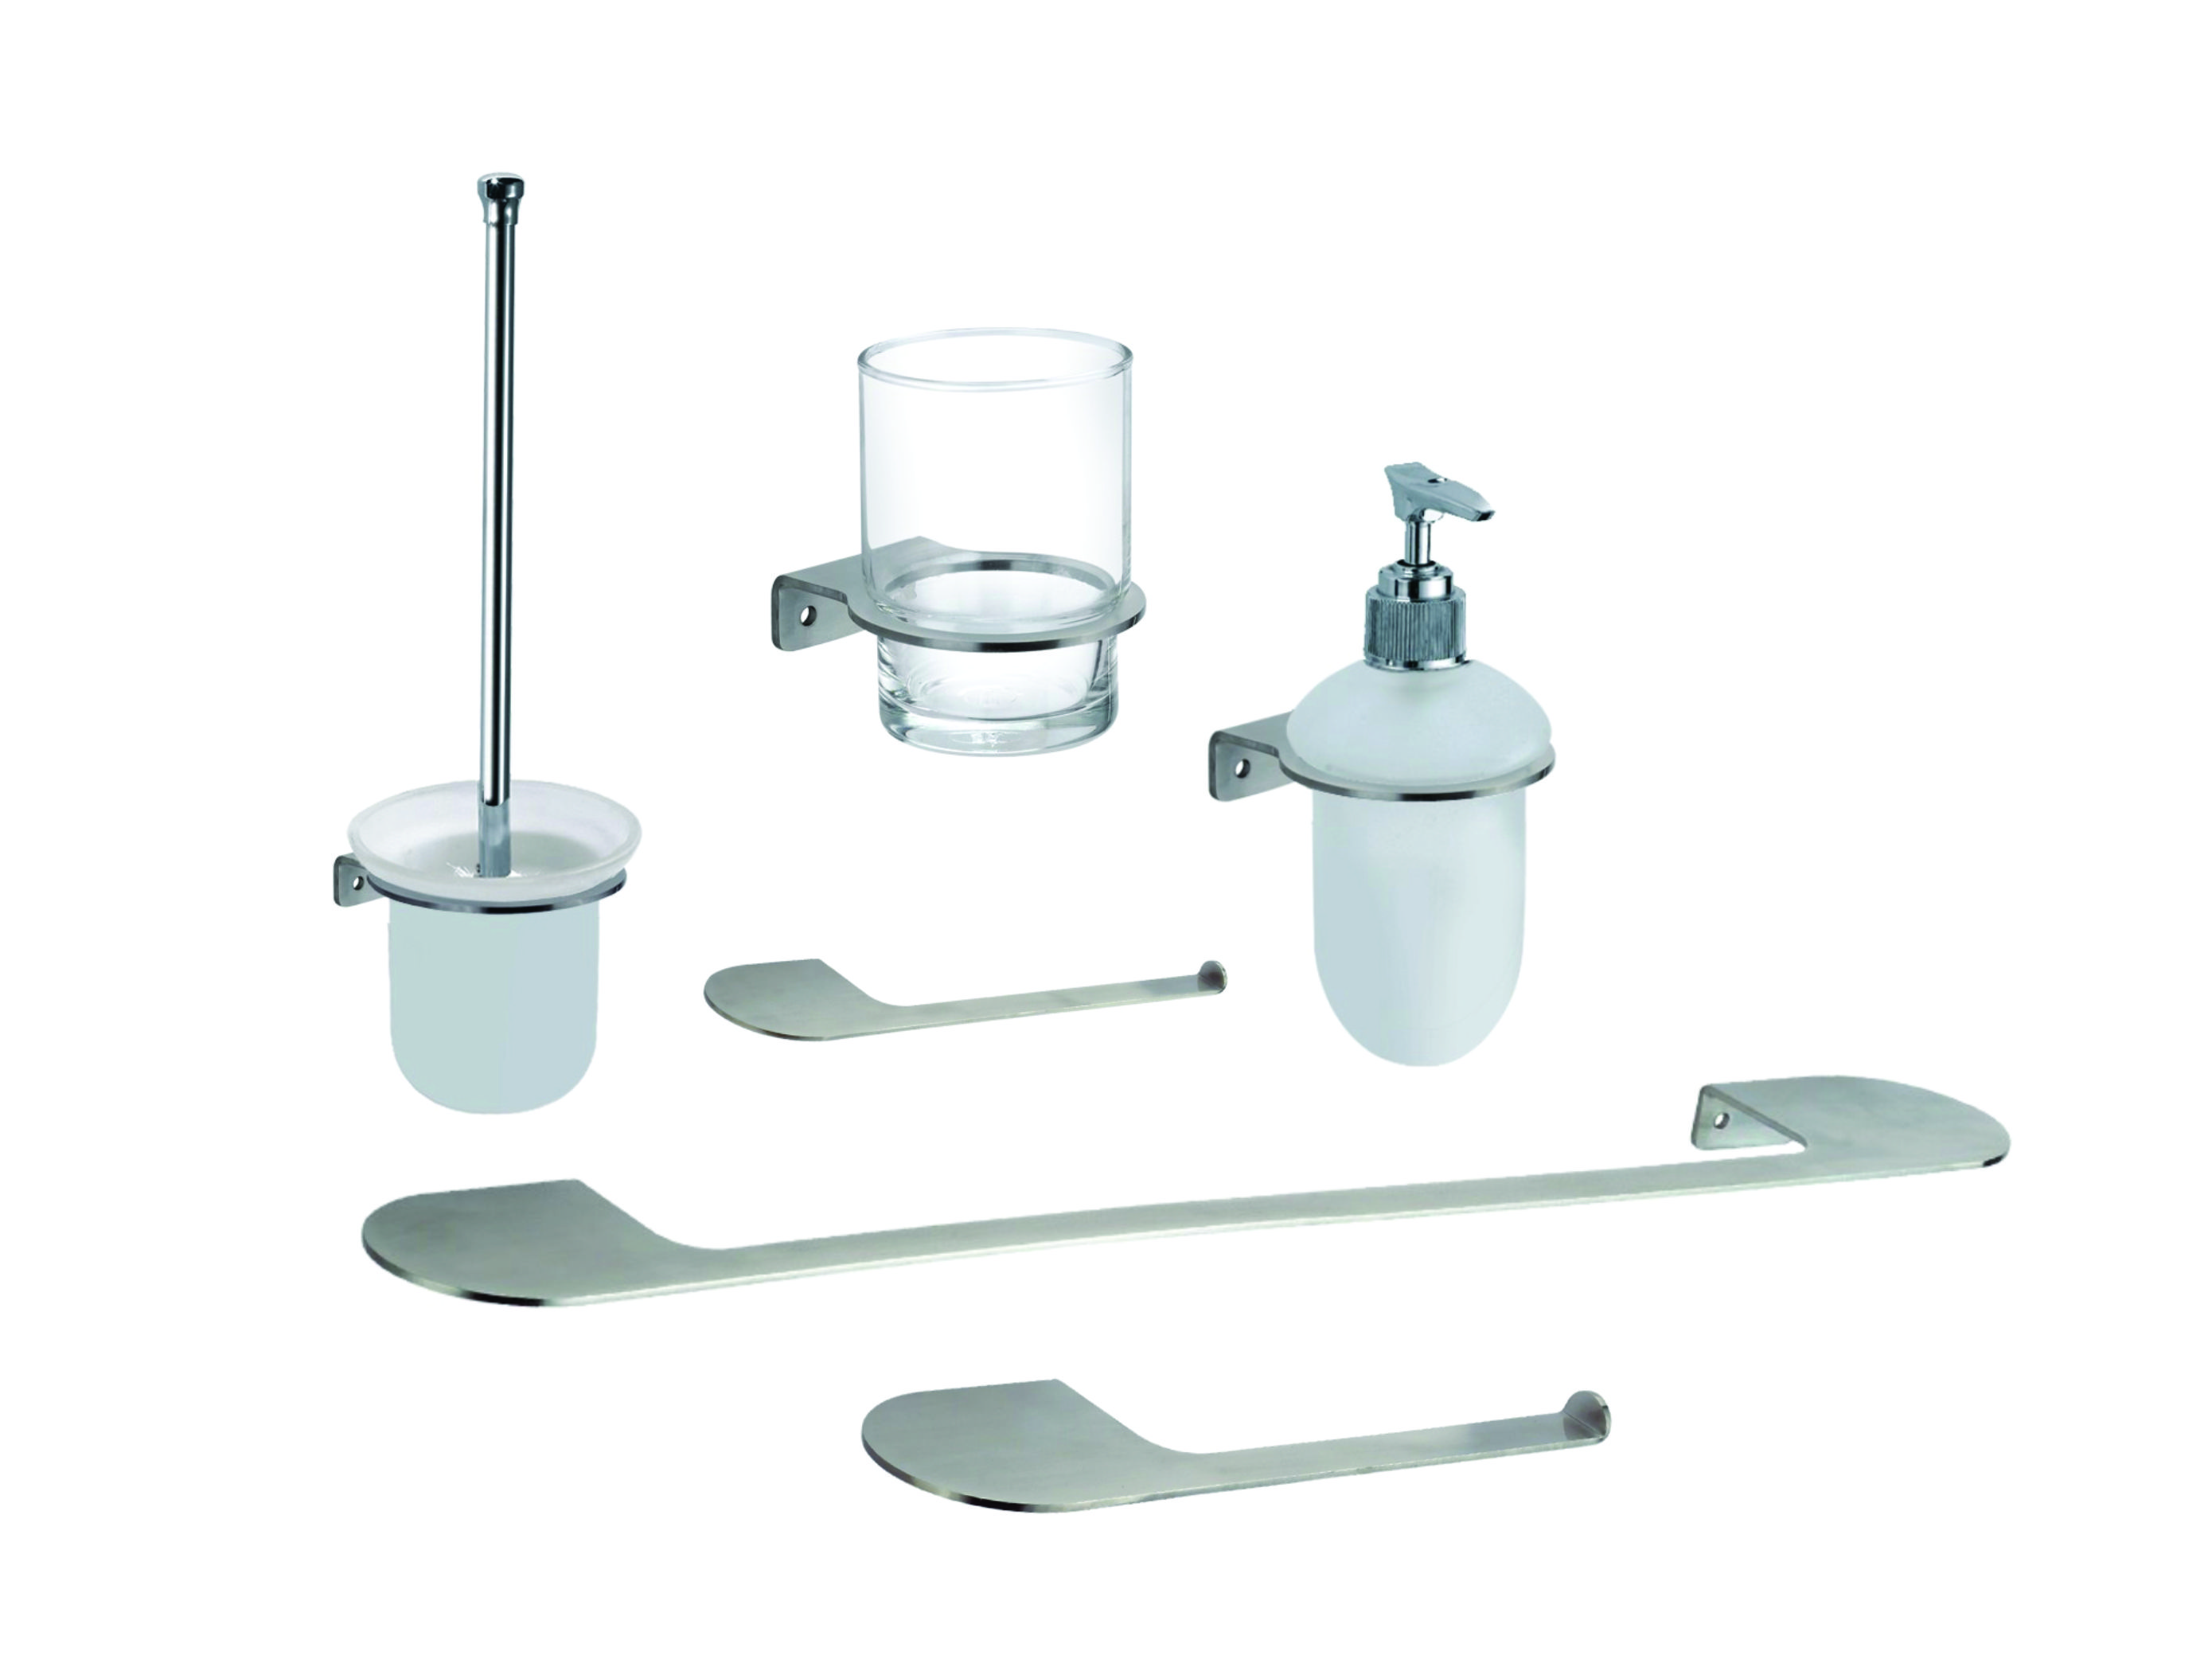 Loft Complete Bathroom Accessories Serie Kit Made With Brushed Stainless Steel On Storenvy